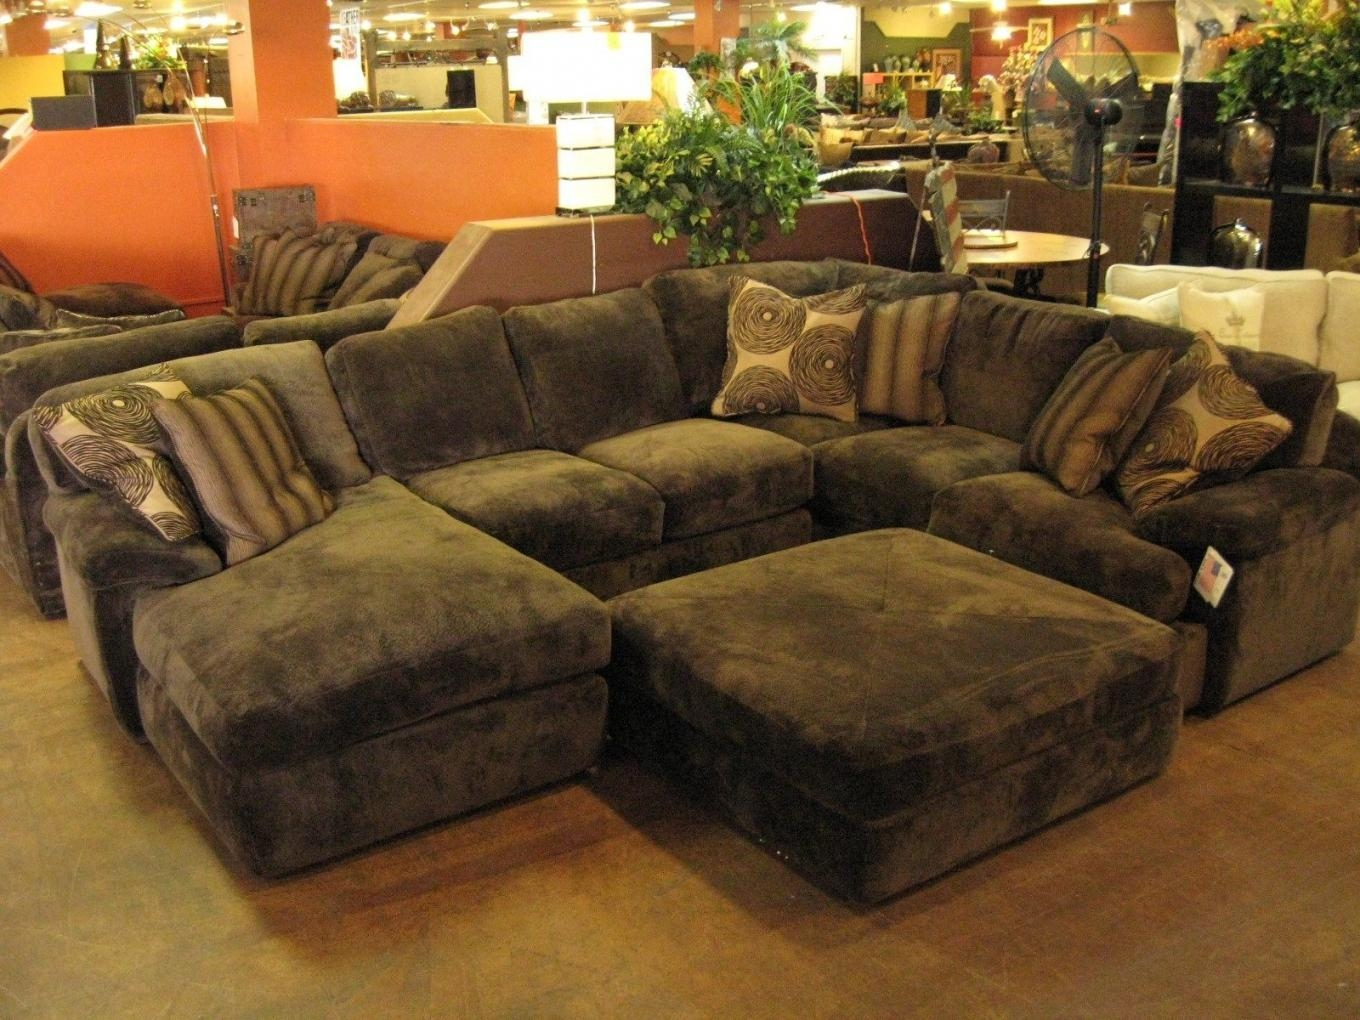 Comfortable Sectional Sofa Within Comfy Sectional Sofa (Image 5 of 15)